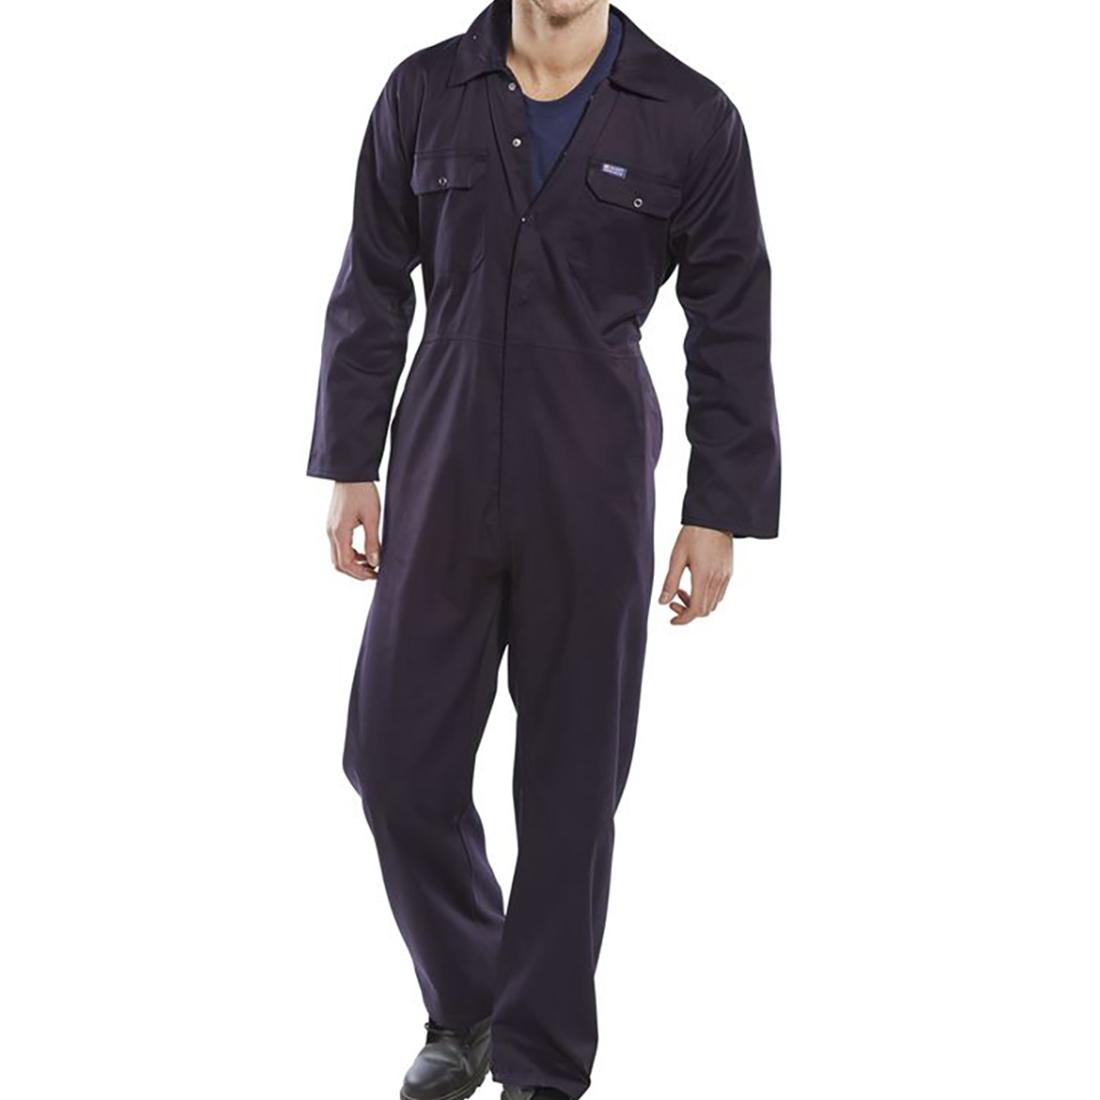 Coverall Basic with Popper Front Opening Polycotton XXLarge Navy Ref RPCBSN50 *Approx 3 Day Leadtime*